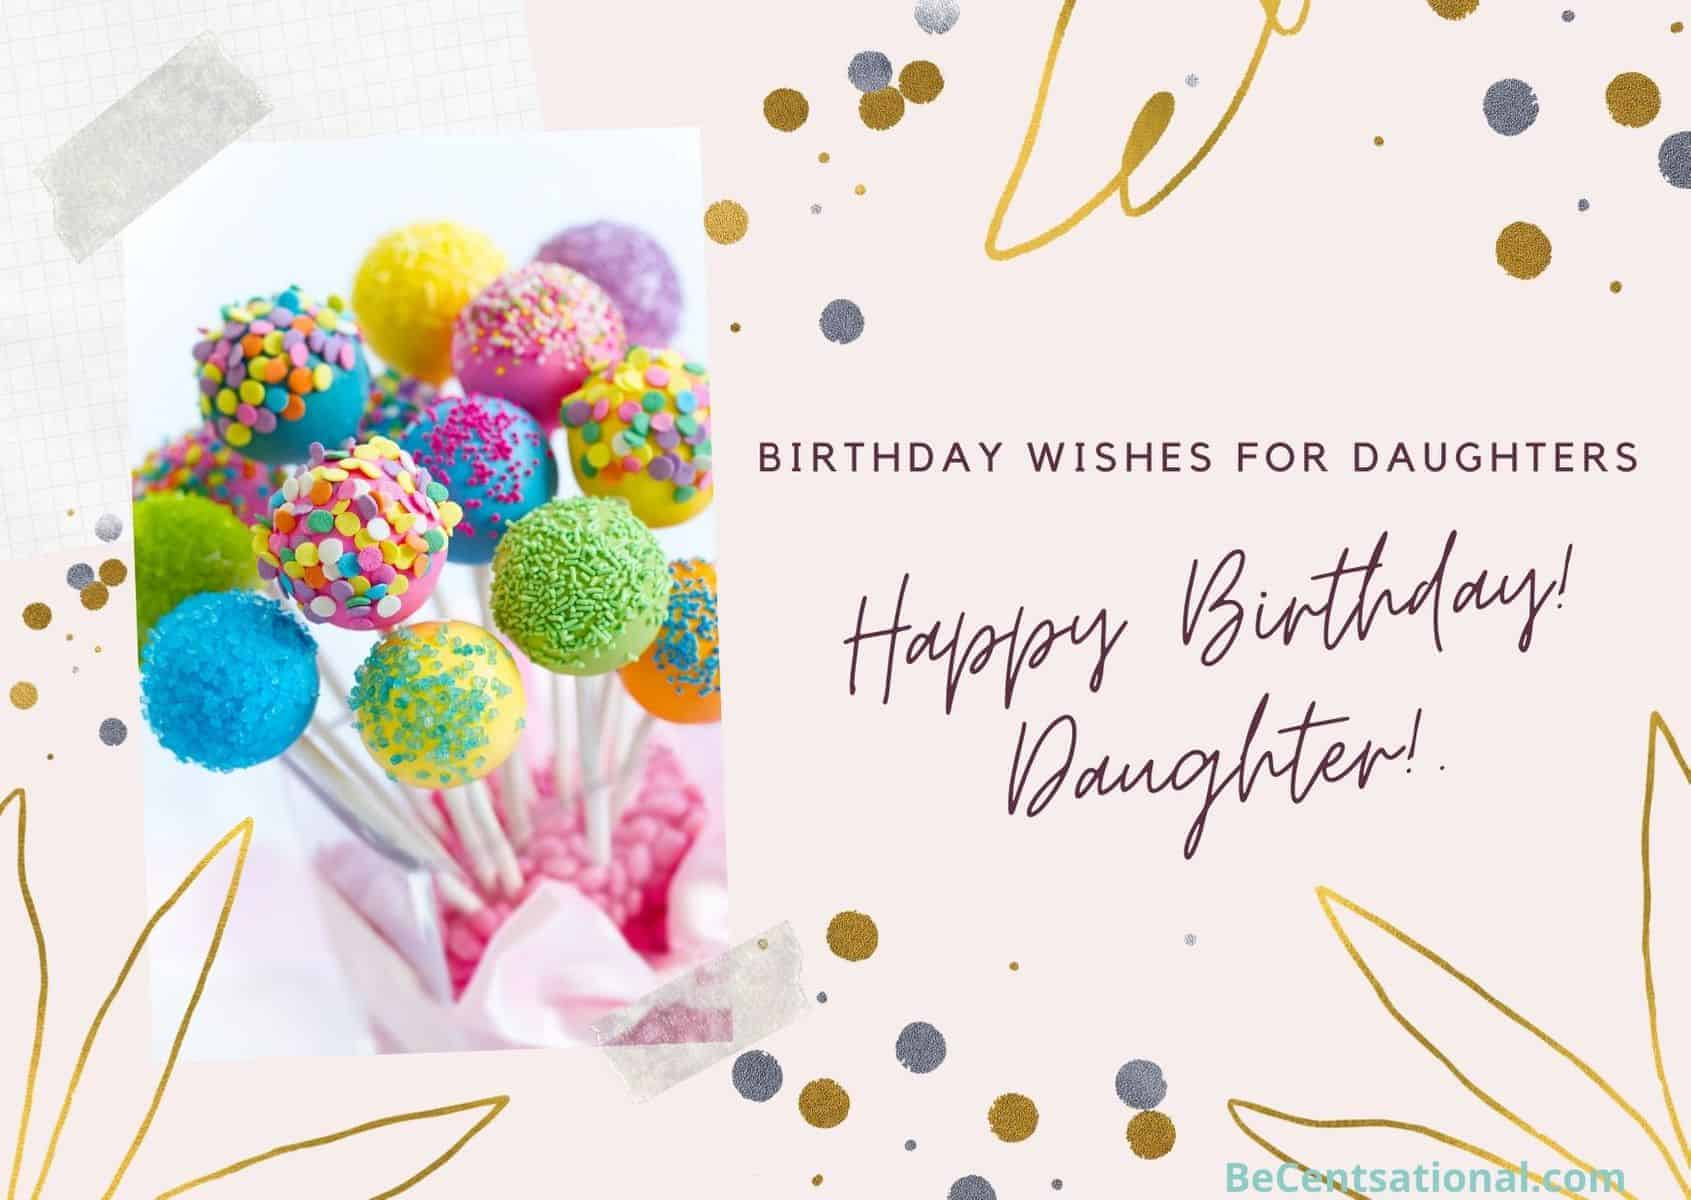 birthday wishes for daughters!